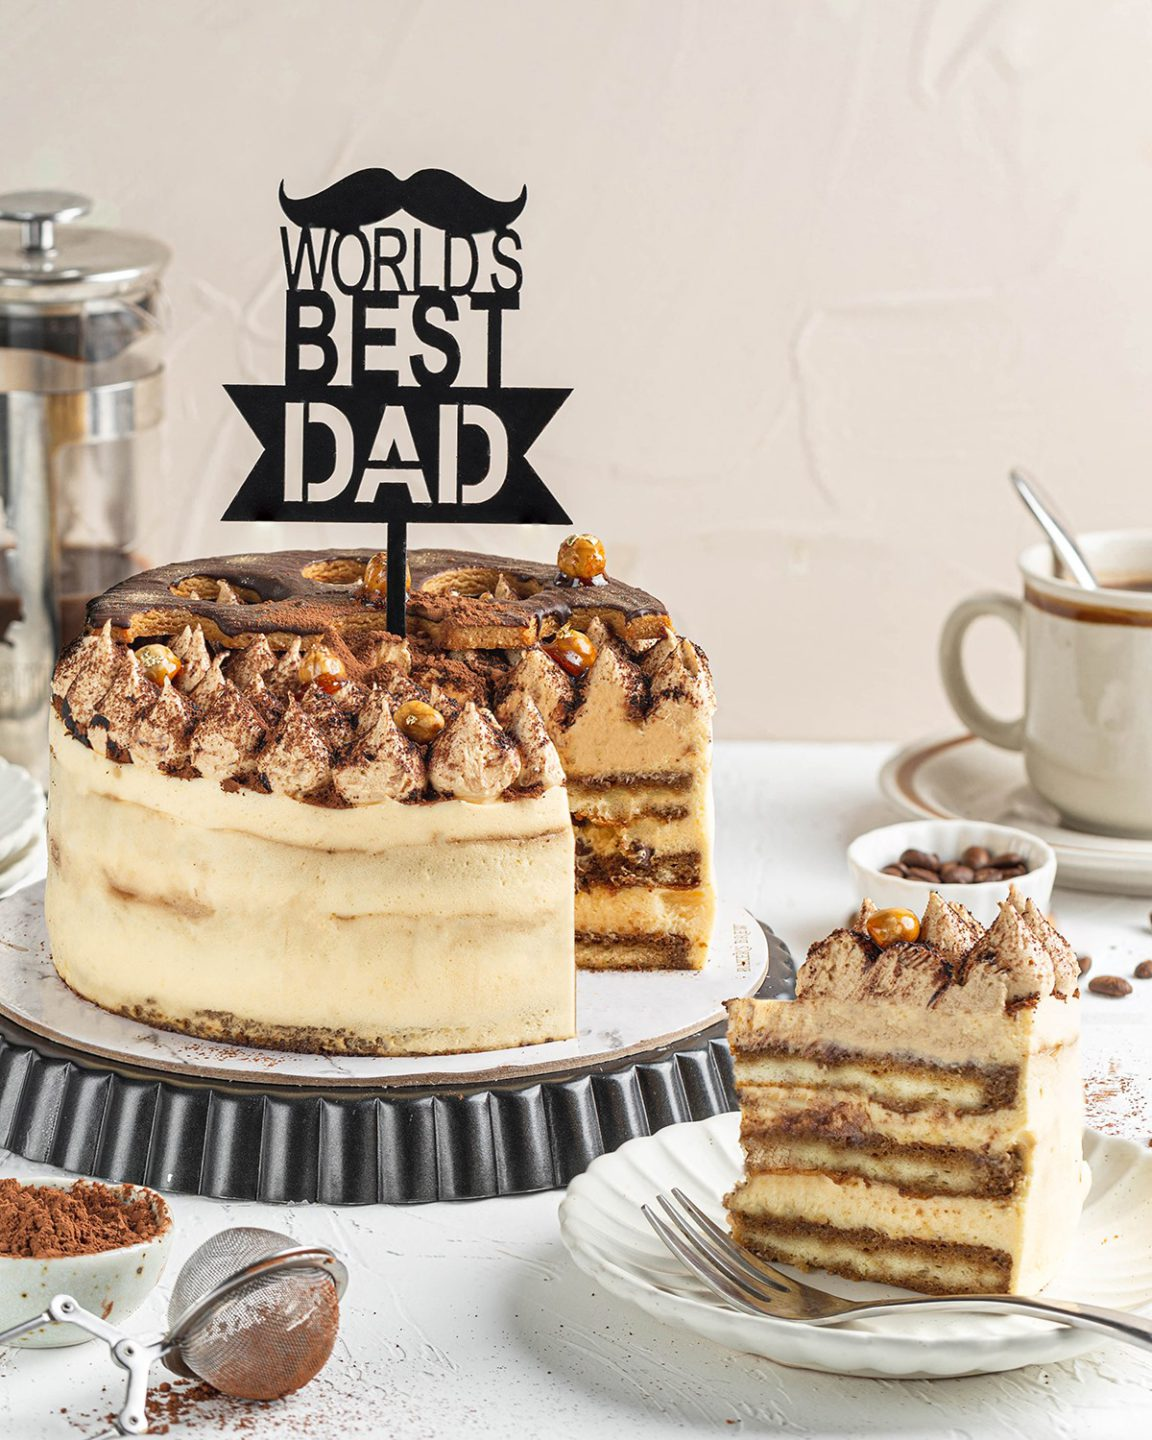 Peanut Butter Tiramisu Cake from Baker's Brew Studio, delivered islandwide in Singapore, powered by Oddle